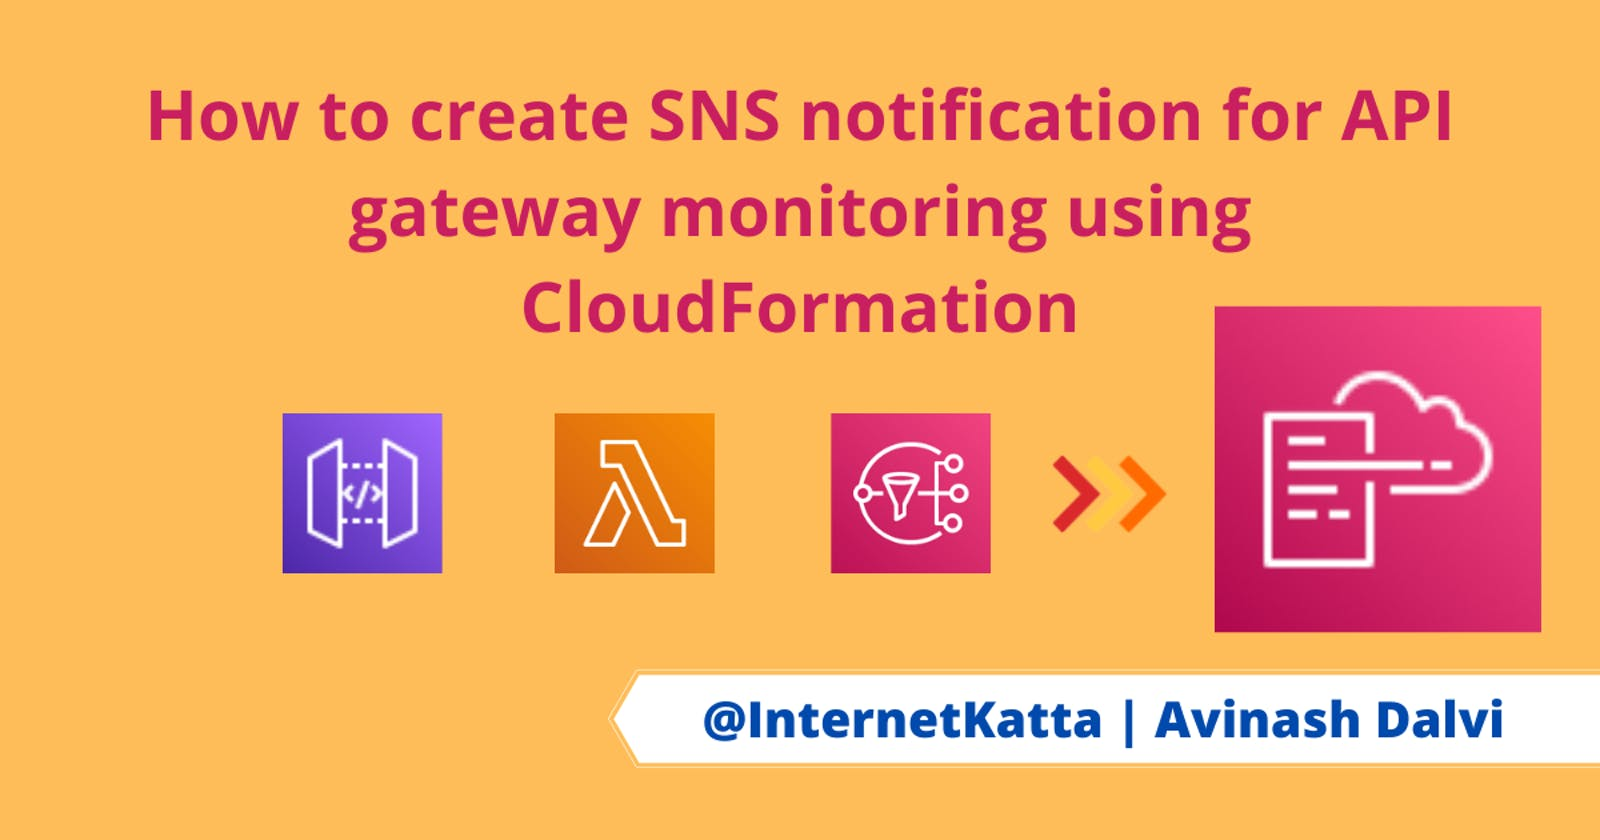 How to create SNS notification for API gateway monitoring using CloudFormation